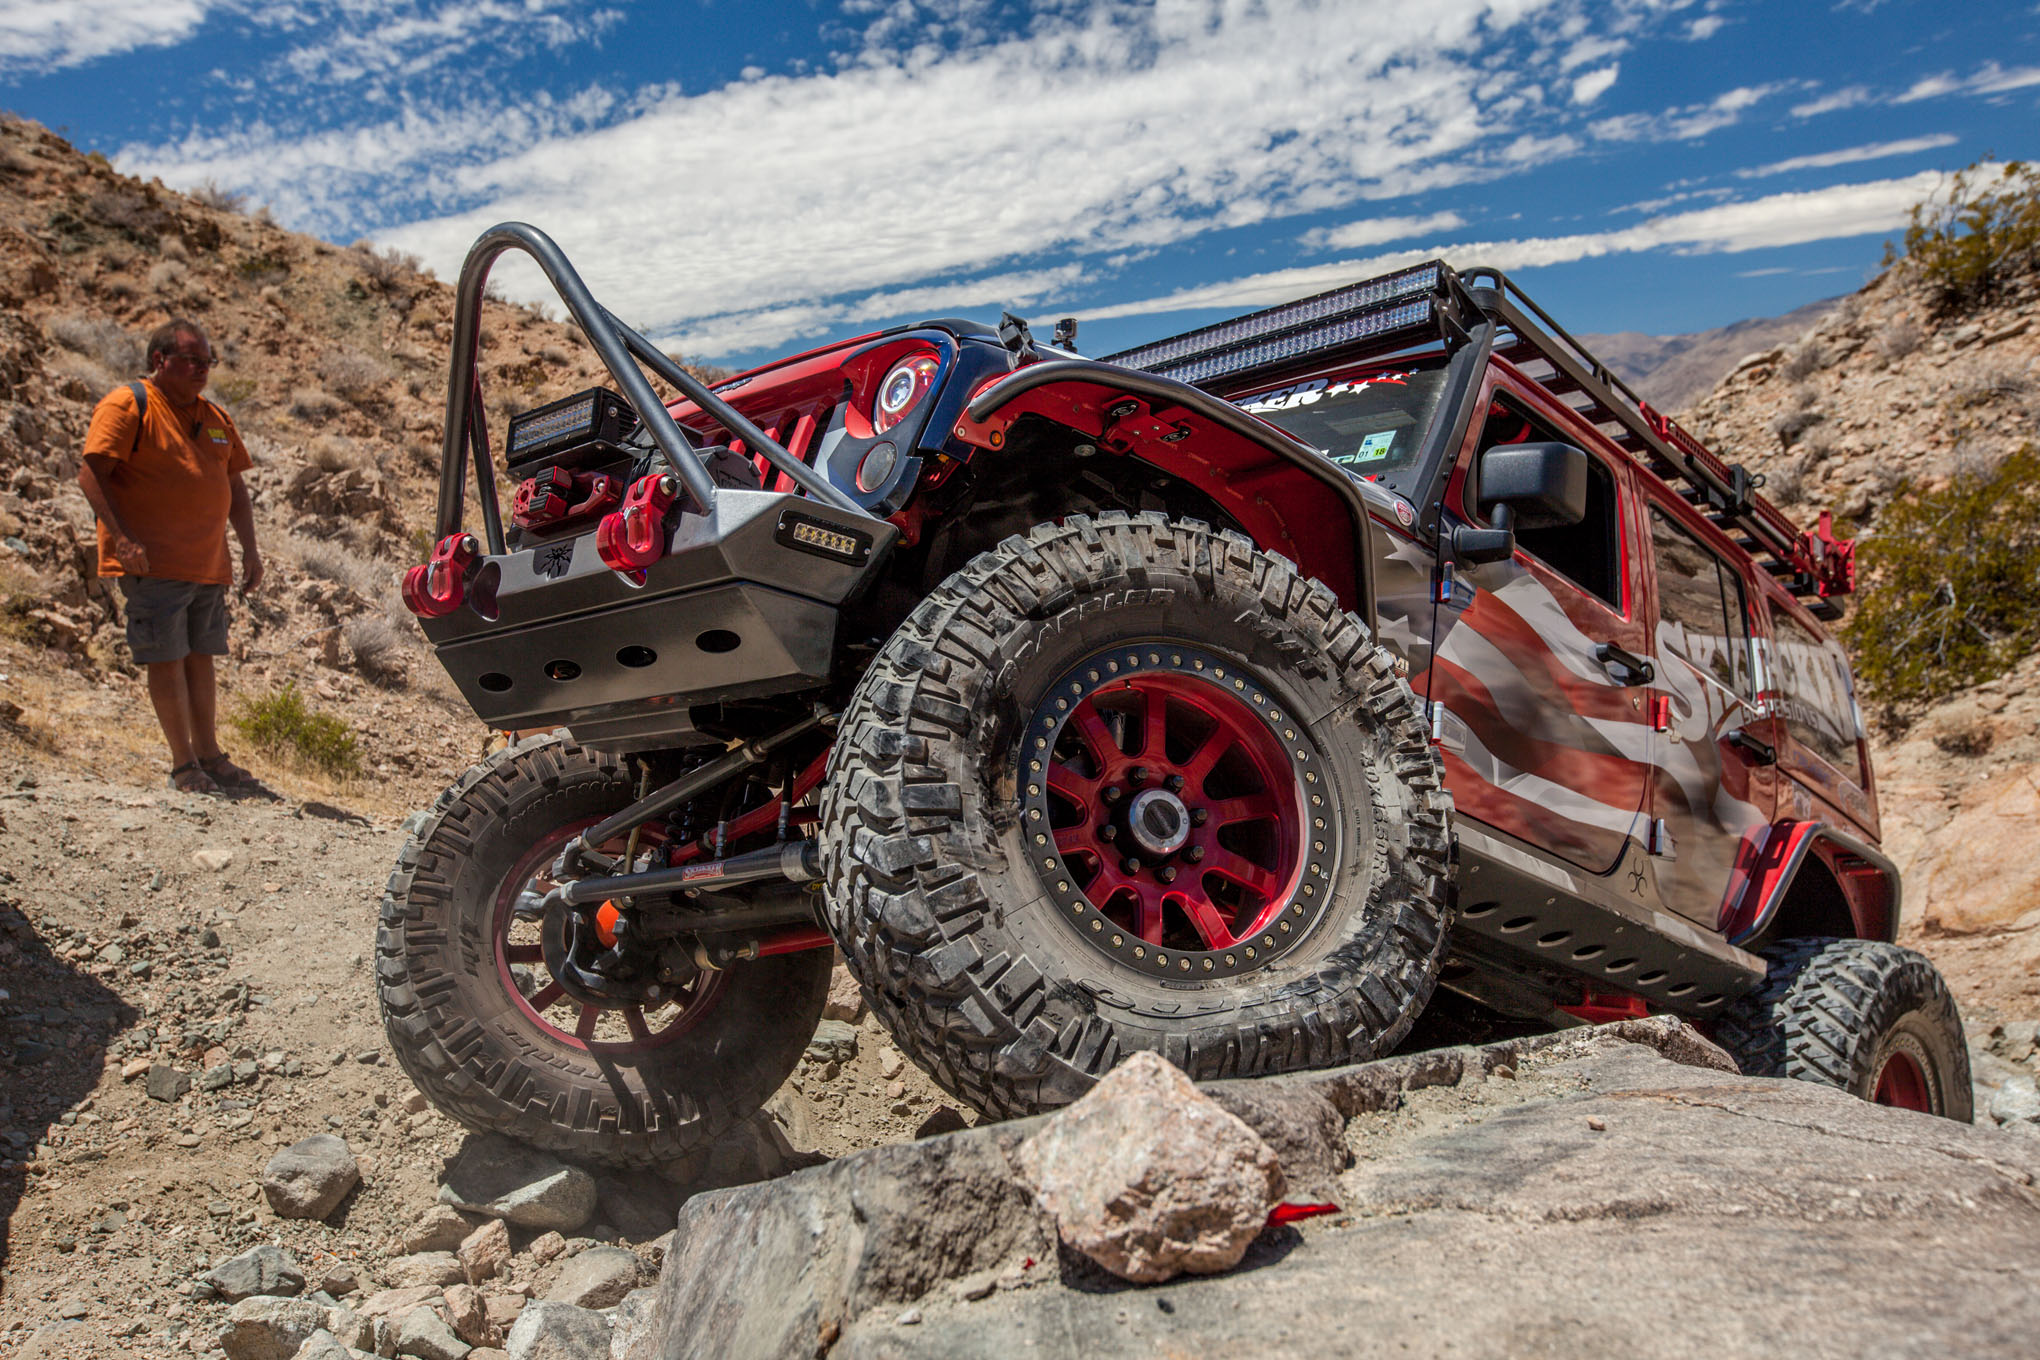 020 2016 Ultimate Adventure vehicles and people